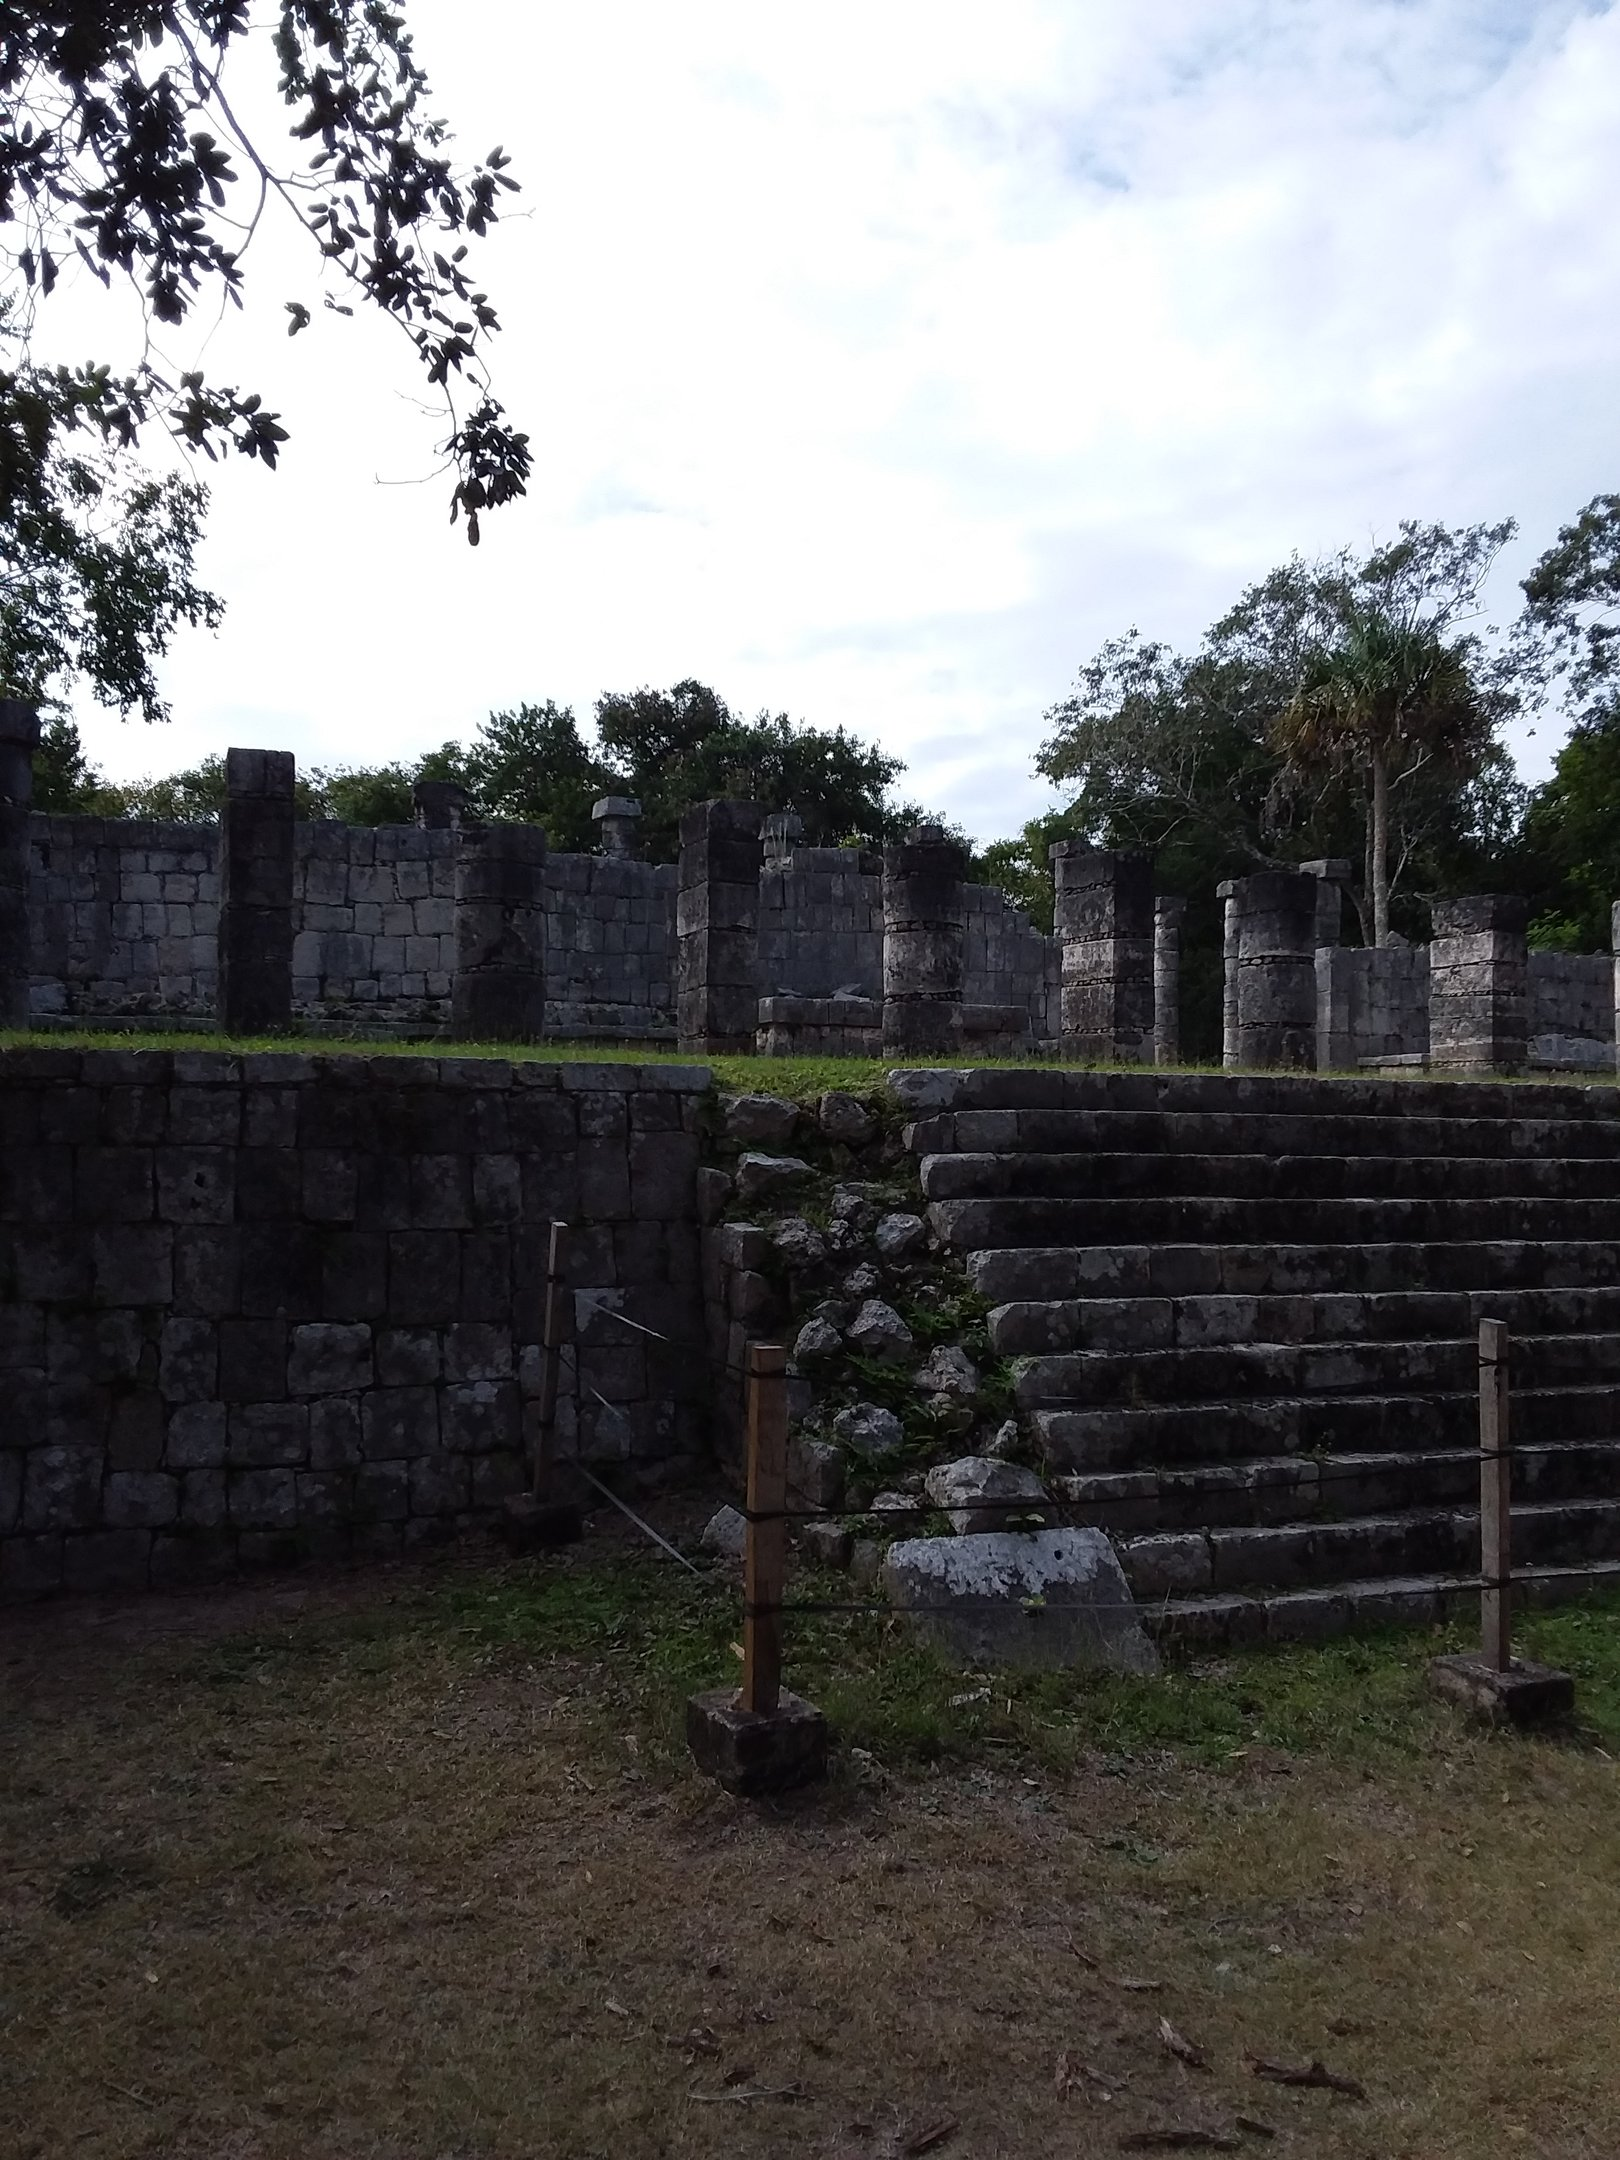 20181224_082757-jpg.48206_Chichen Itza (Not So Much a Story Than It Is Pictures)_Travel Stories_Squat the Planet_4:02 PM